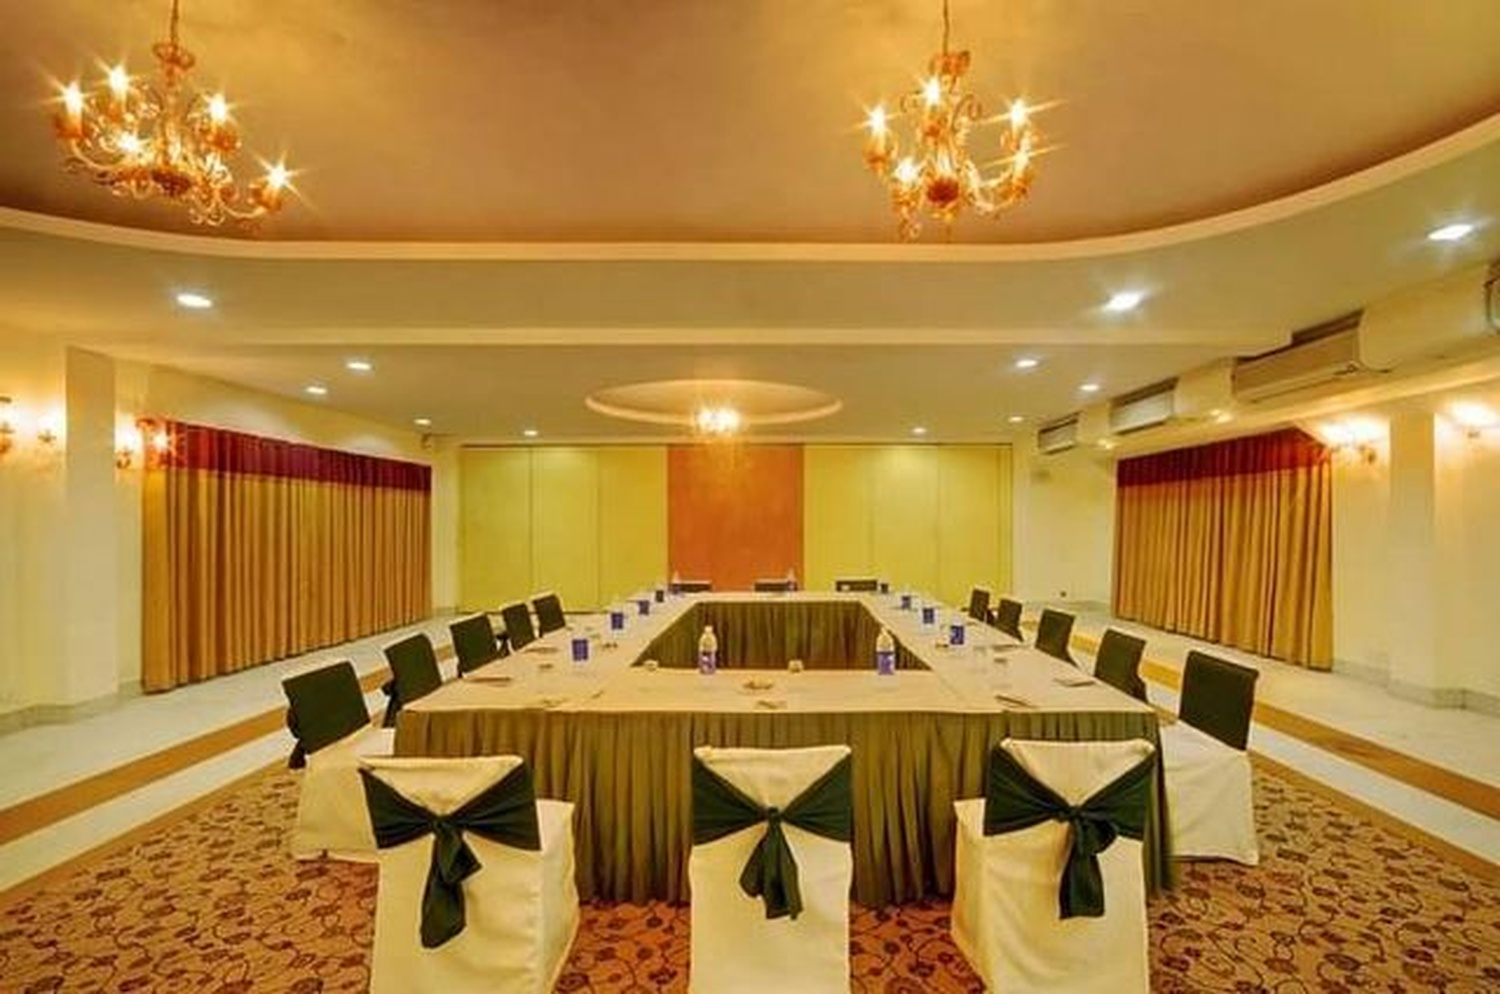 Unitech Club Patio Gurgaon Delhi Banquet Hall Wedding Lawn